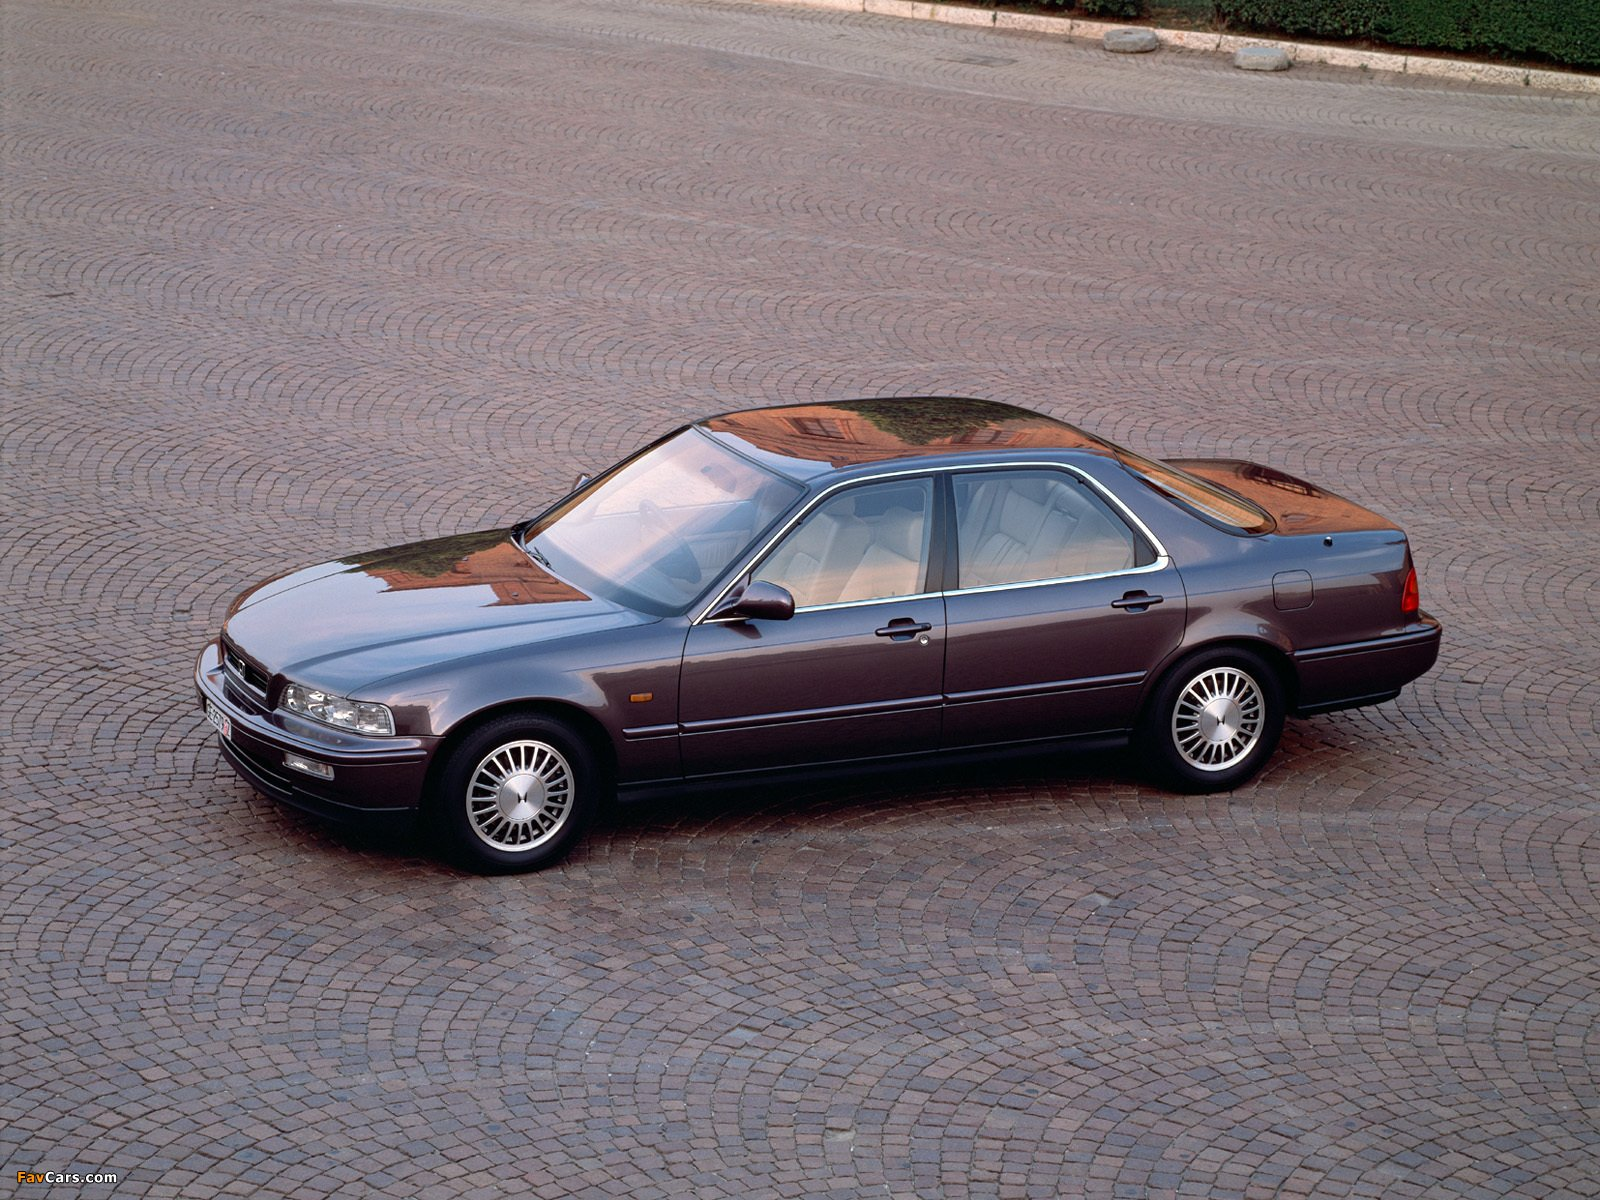 Cars honda legend ii (ka7) 1990 #7